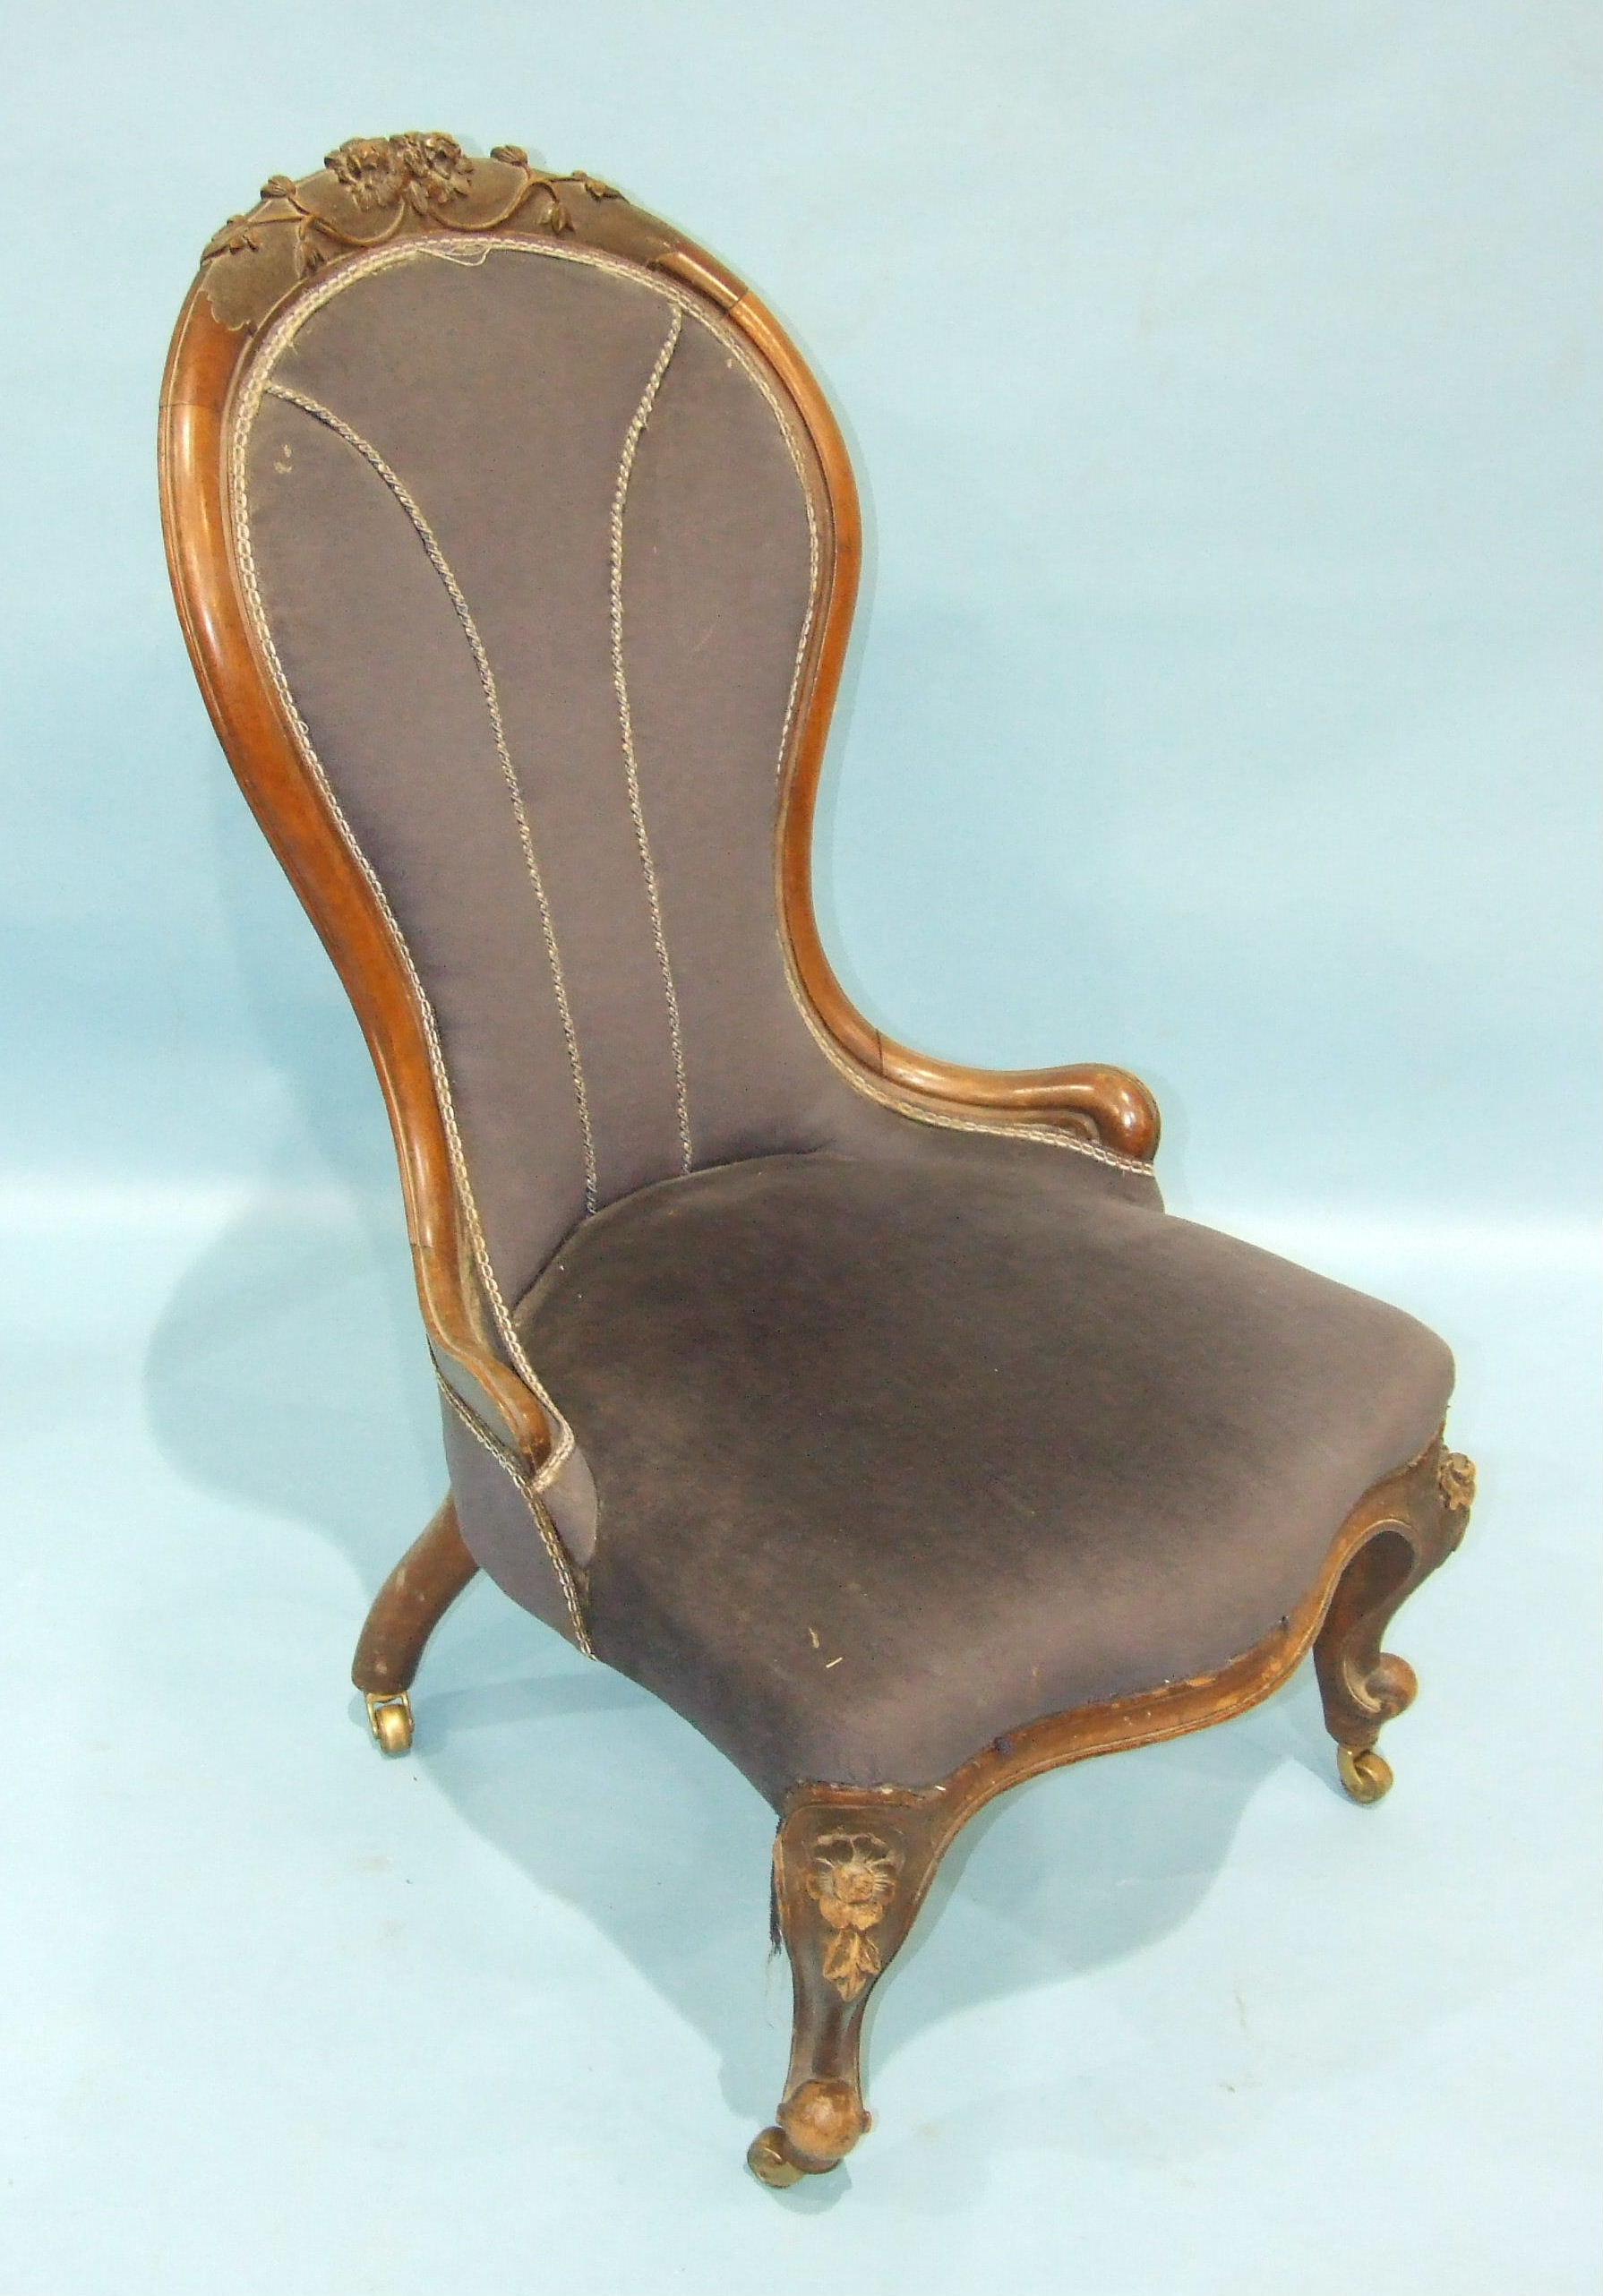 Lot 98 - A Victorian walnut spoon-back nursing chair, the frame carved with flowers and with serpentine seat,